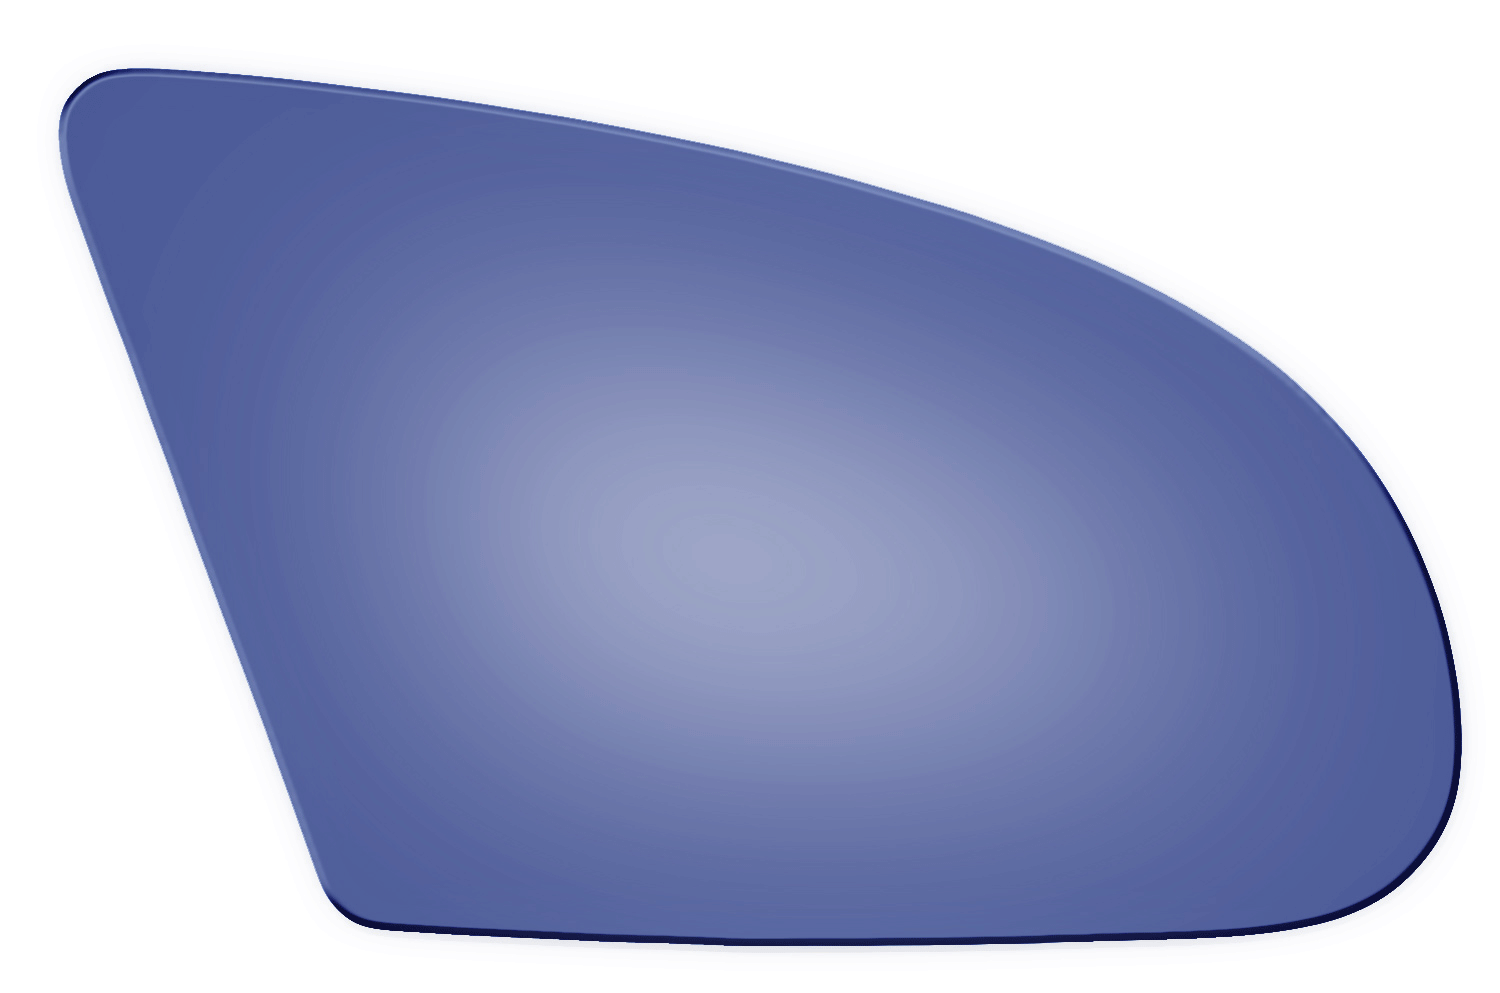 Ford taurus side view mirror glass